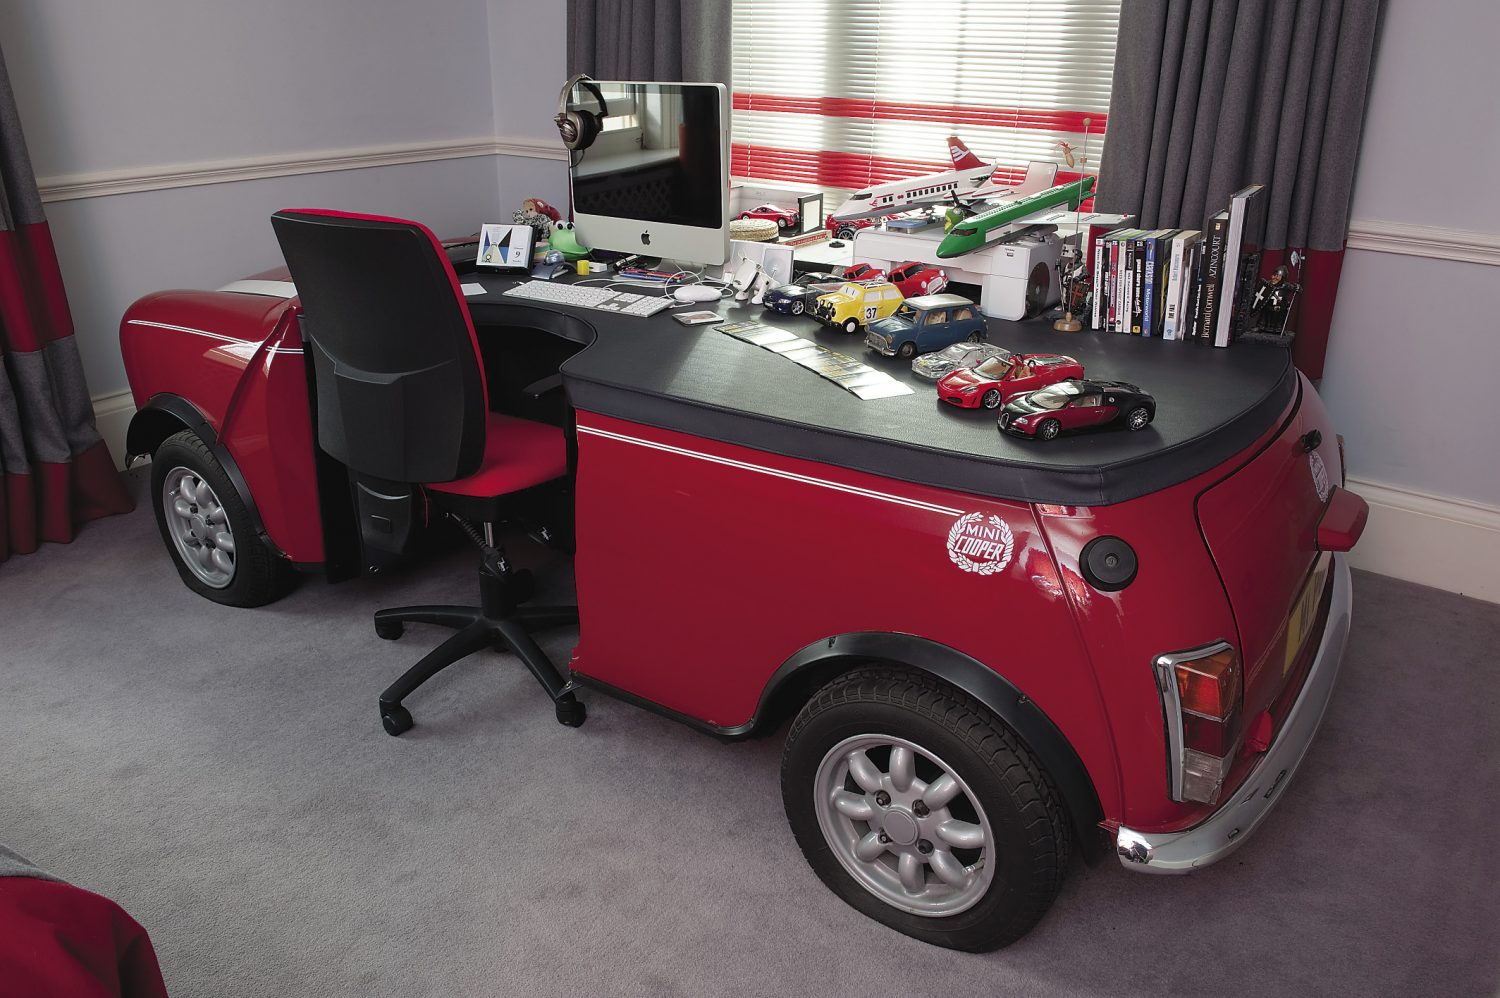 Theodora's teenage son's bedroom is a homage to The Italian Job. A full size Mini Cooper has been converted into a desk and the curtains feature the Mini logo as the pelmet motif